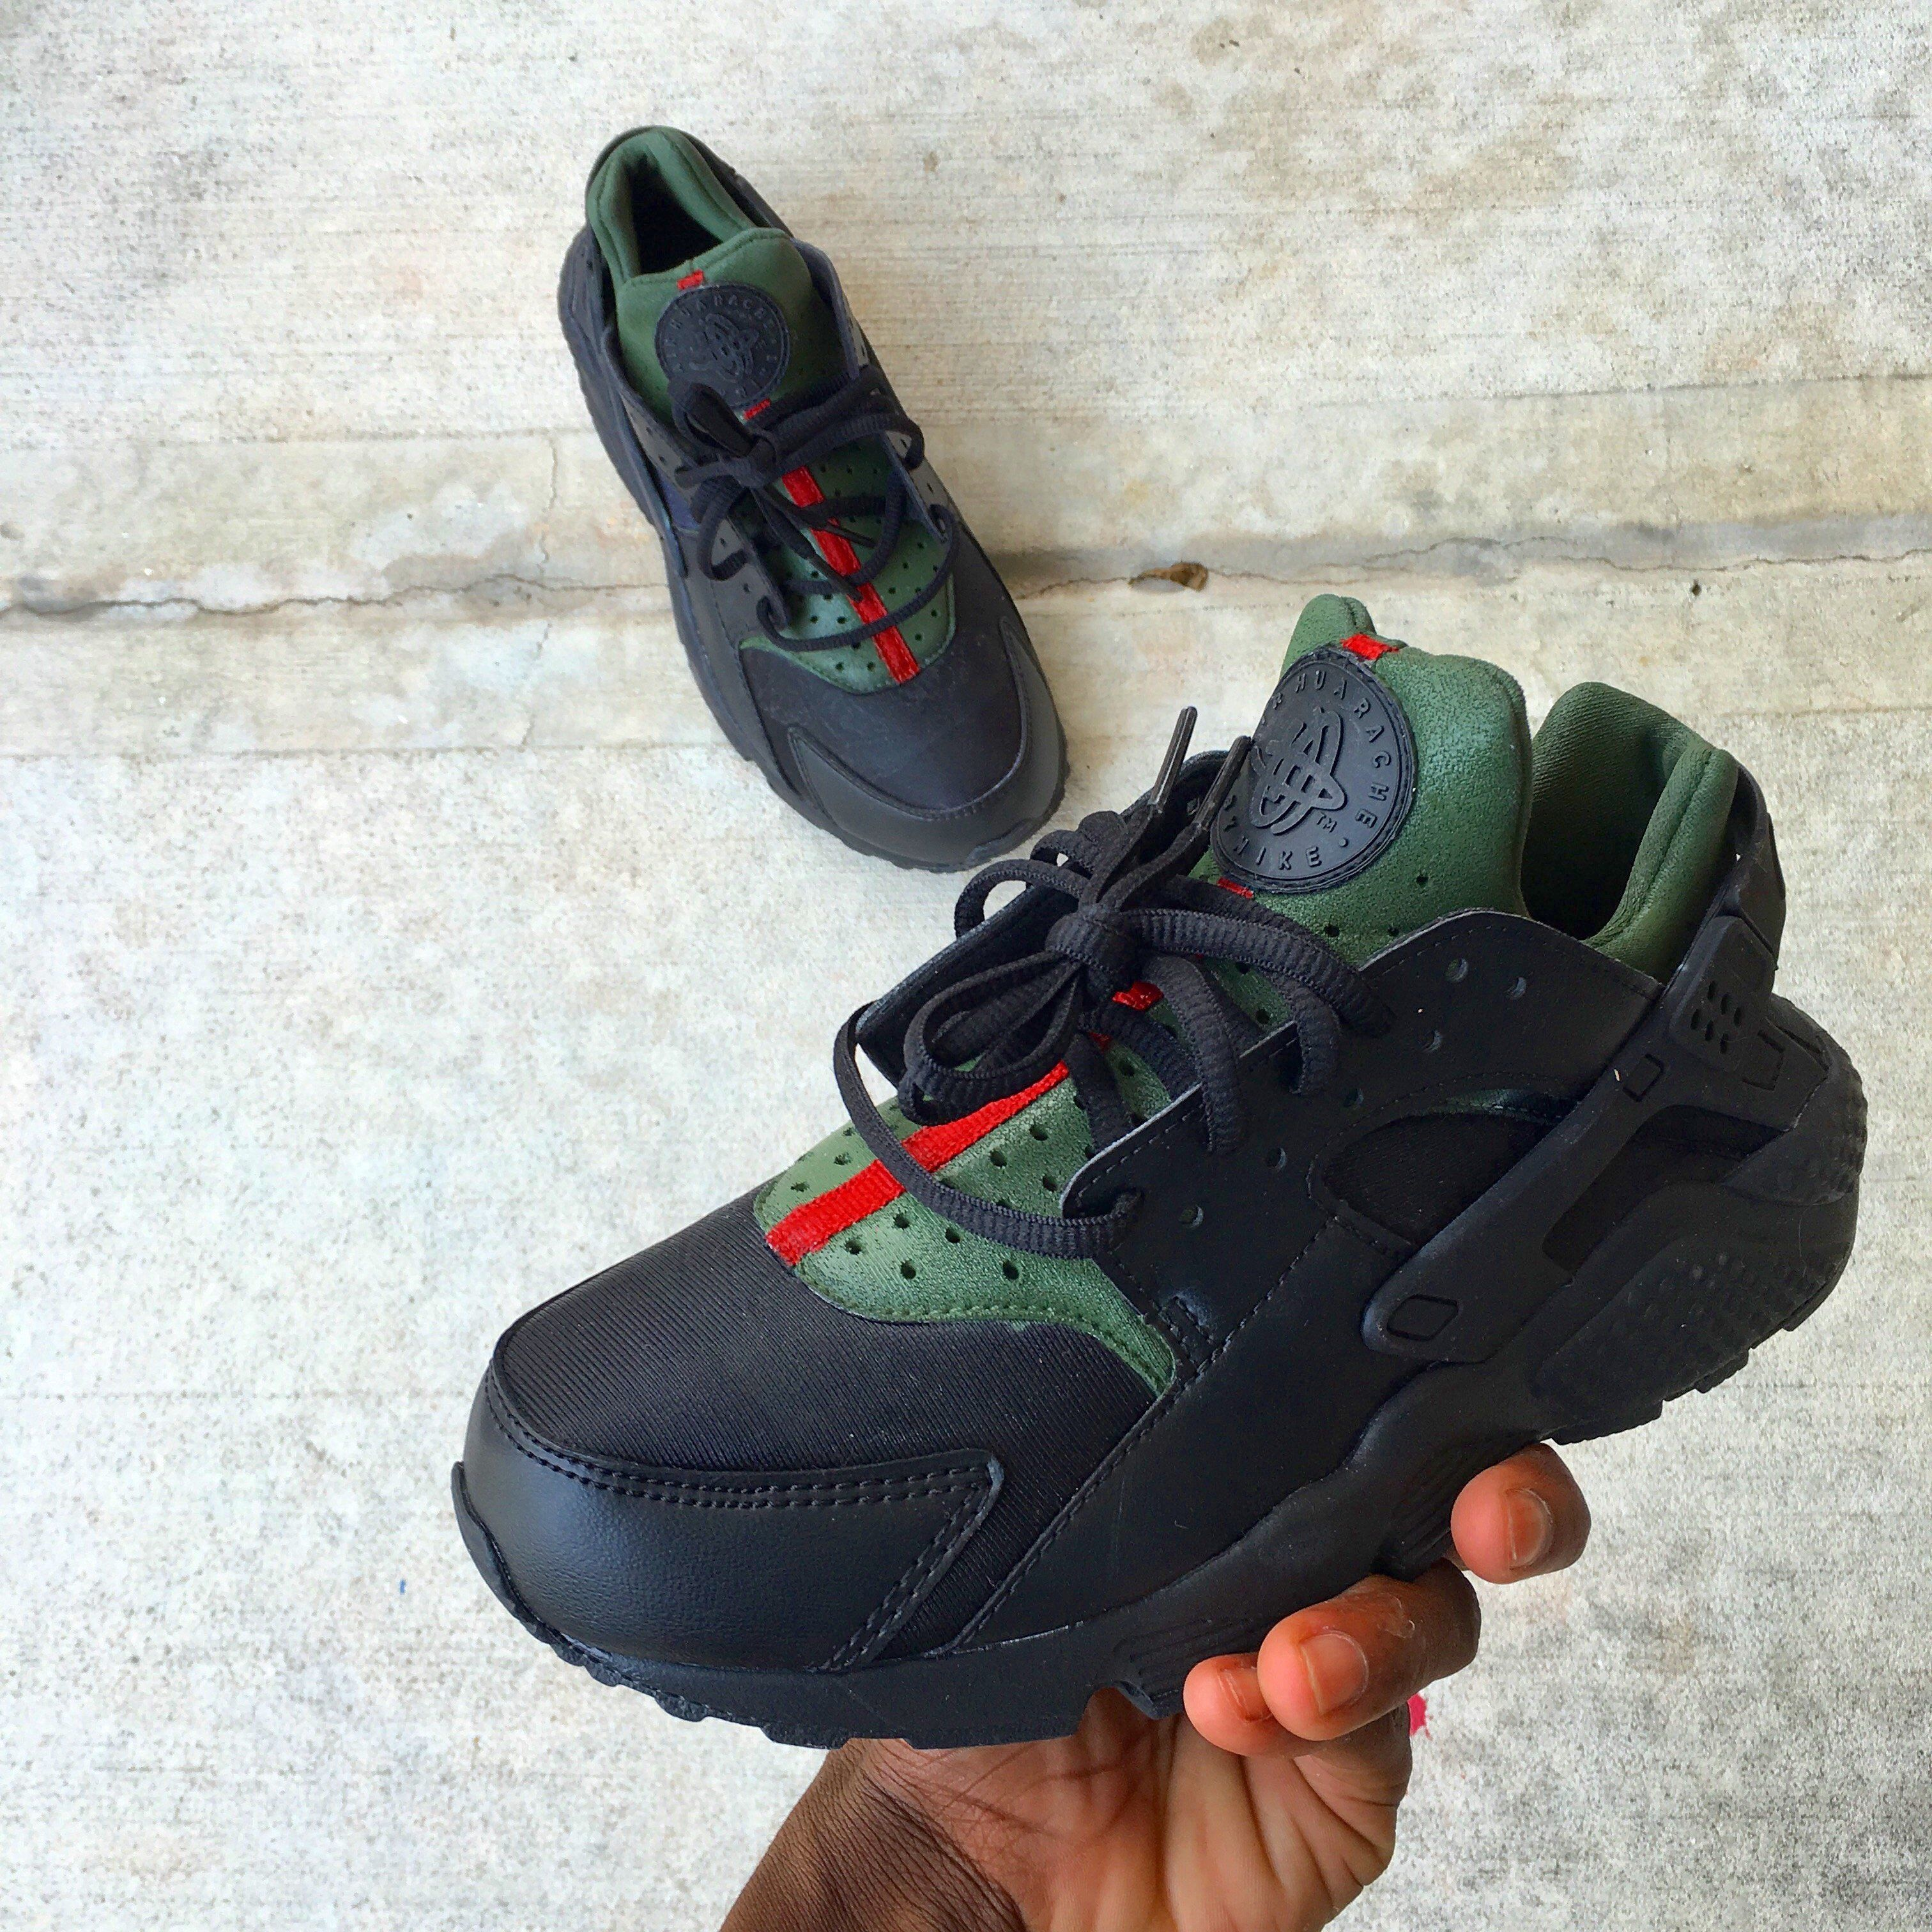 c8db29eda5e1 Black Gucci Huarache is hand painted. Orders can take 2-3 weeksIf you would  like your order sooner add rush to your order